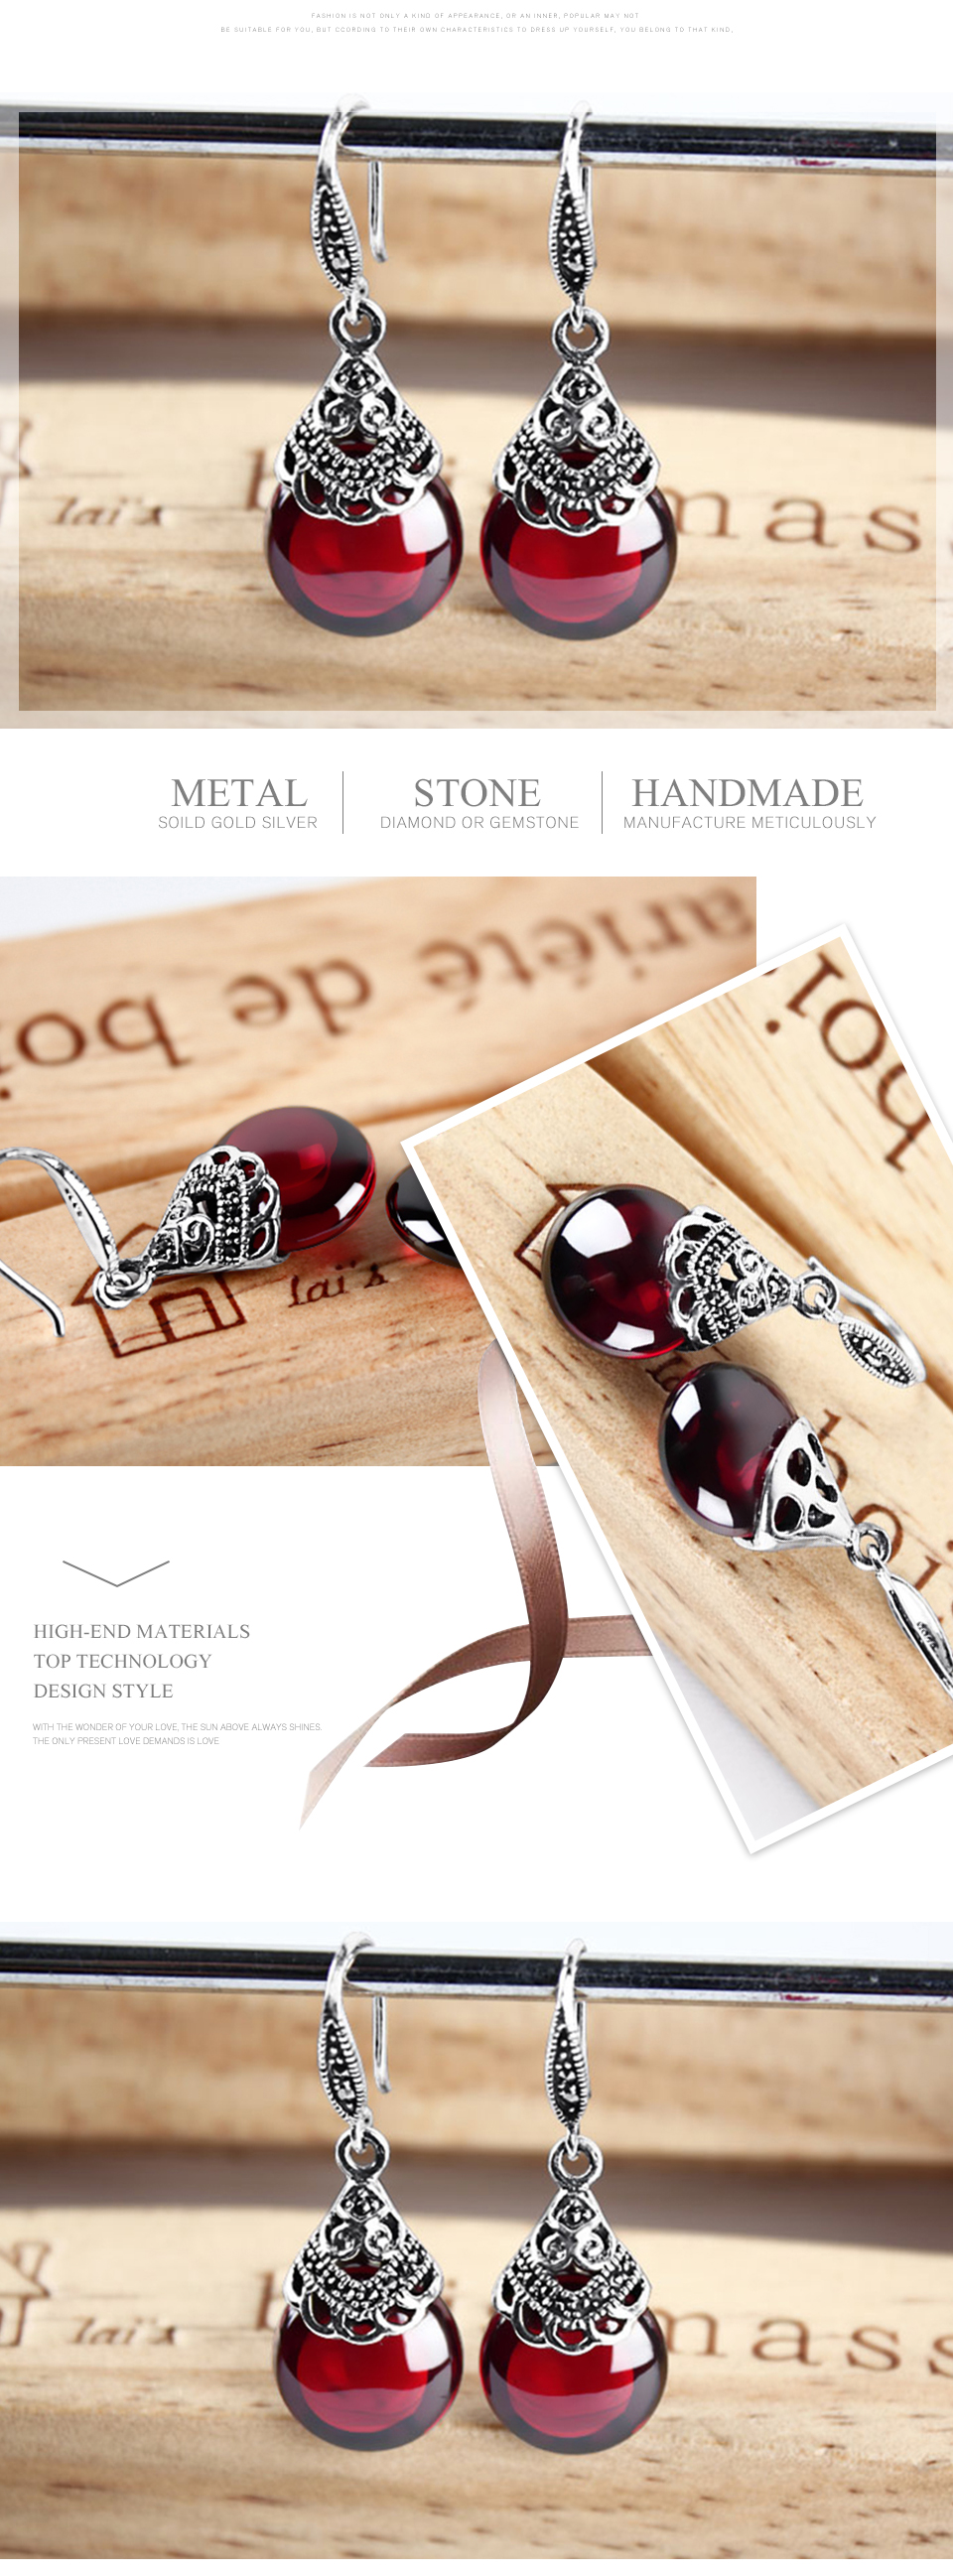 Edi Retro Round Gemstone Garnet Earrings Female 100 925 Sterling Lucky Baby Paci Kliper Pacifier Holder Lion Lb 3383 Silver Fine Jewelry Us631